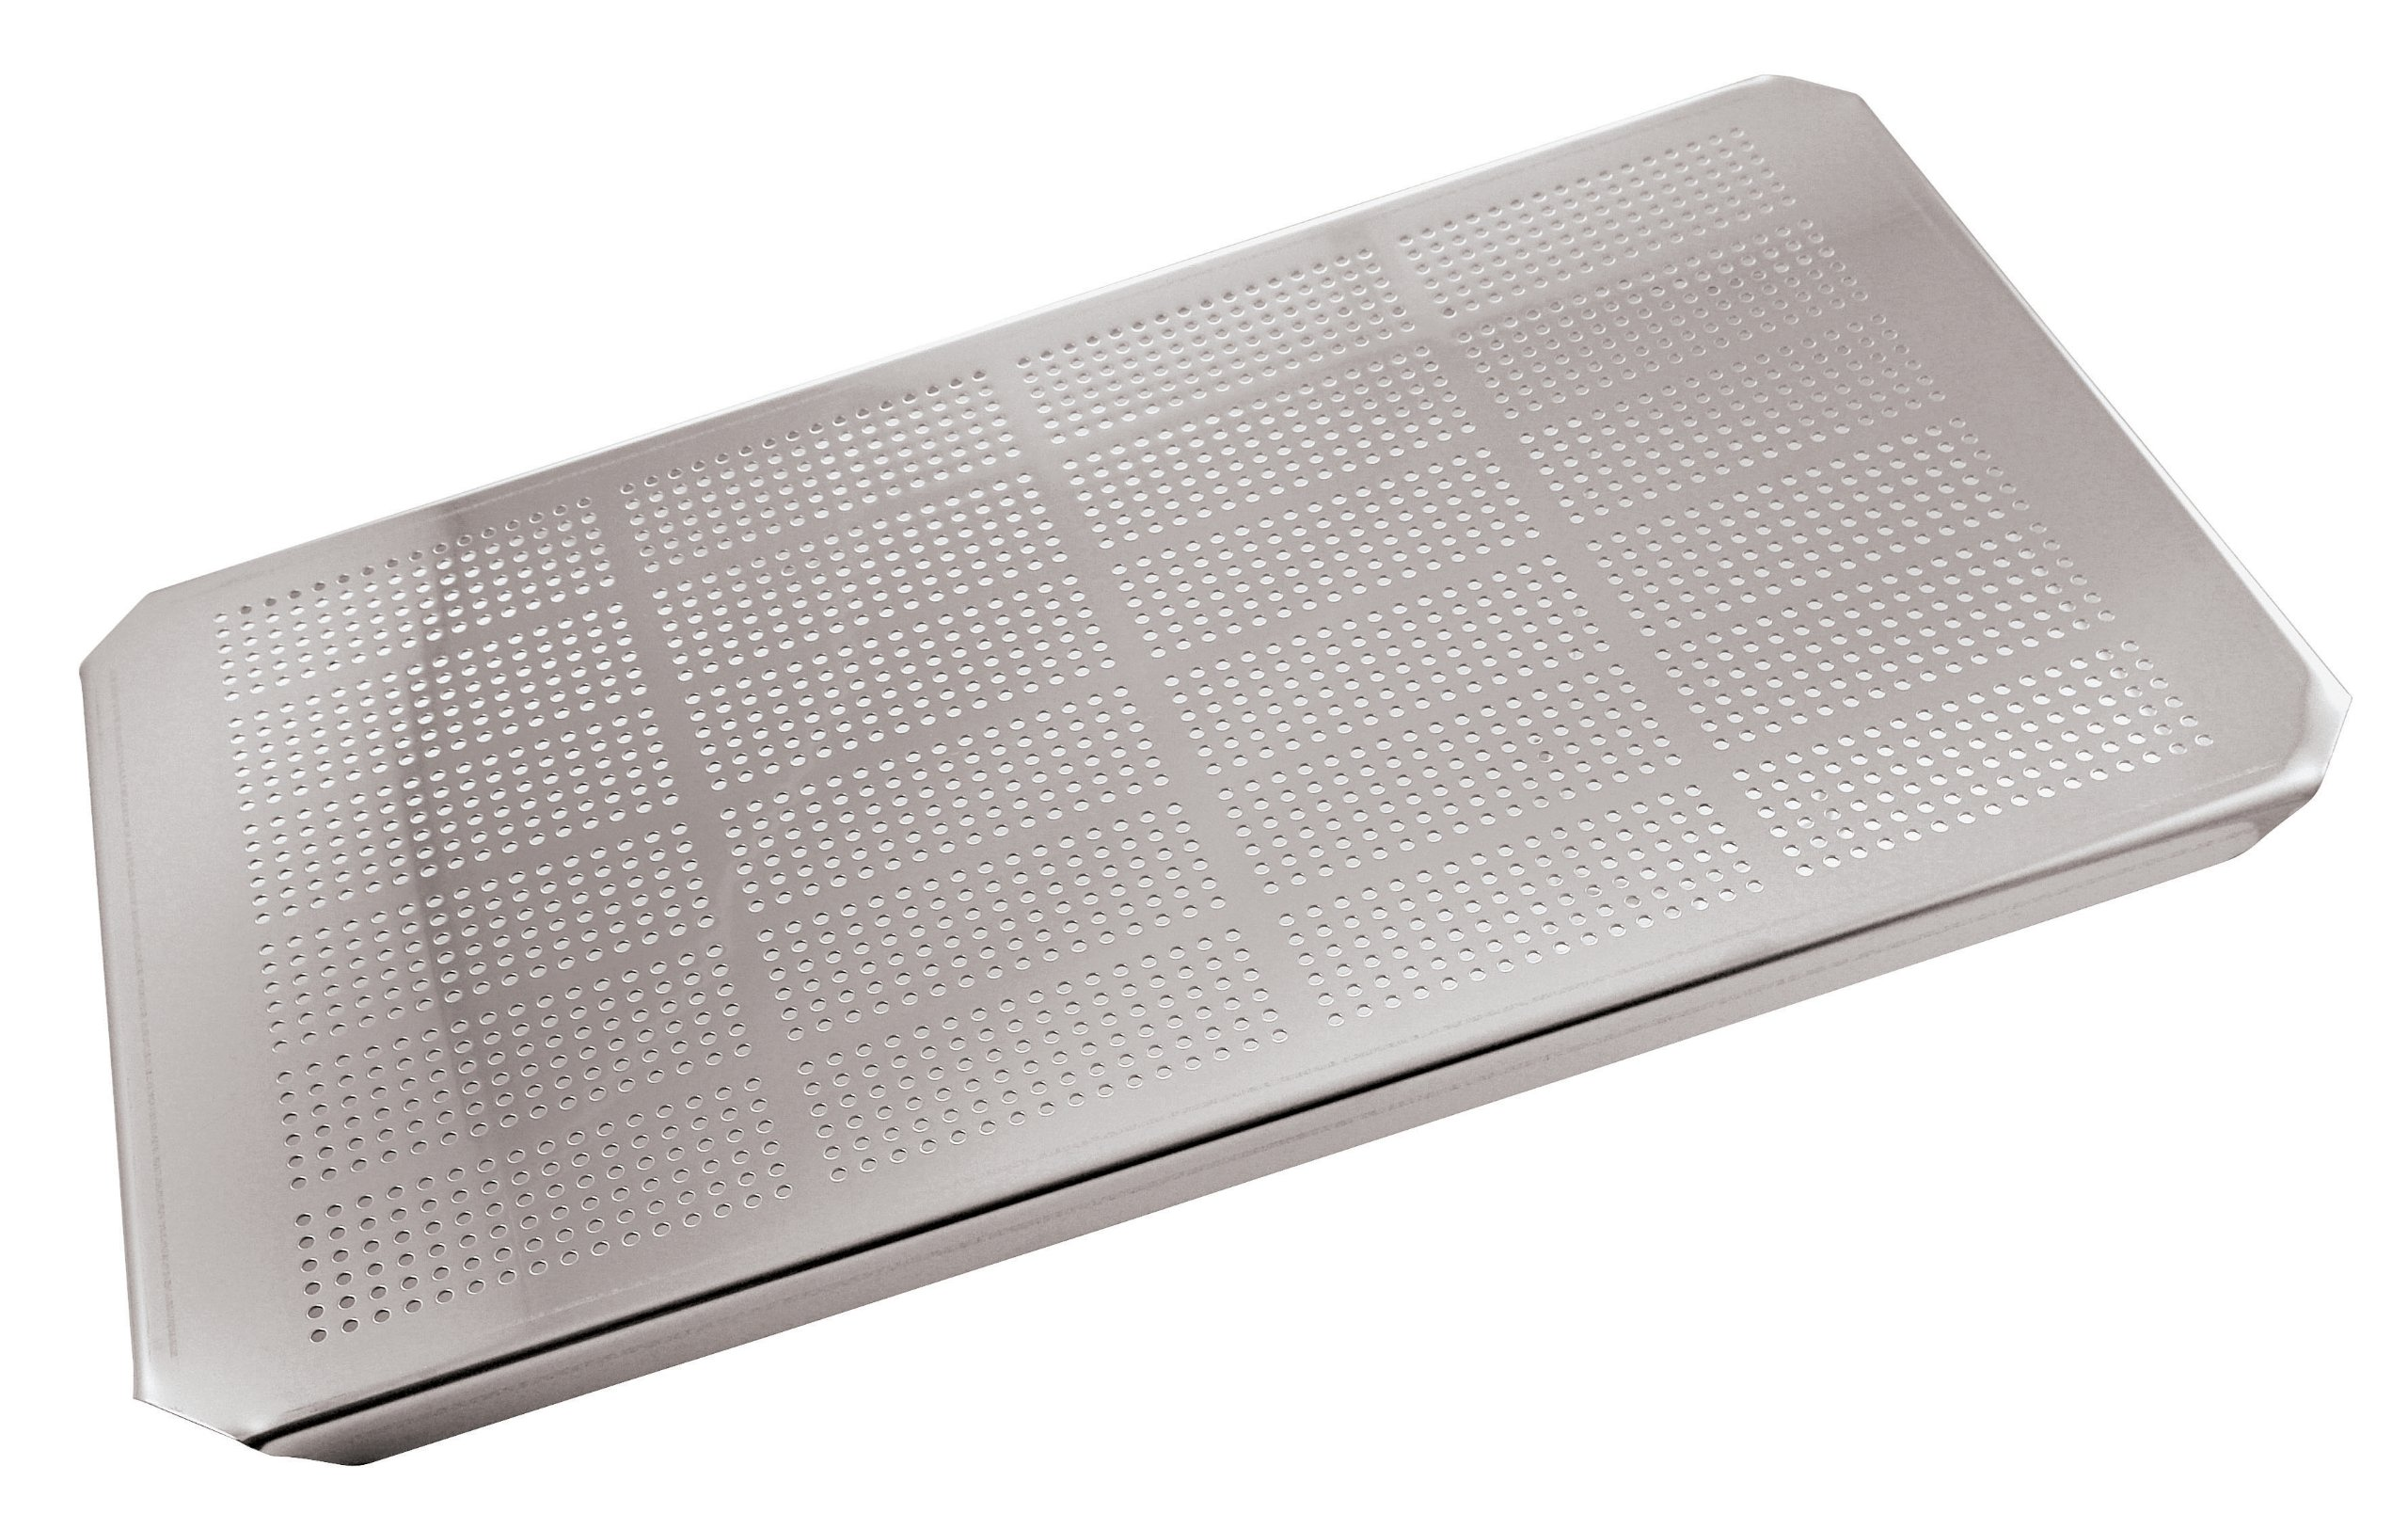 Paderno World Cuisine 20 7/8 inches by 12 3/4 inches Stainless-steel Drainer Plate for Hotel Pan - 1/1